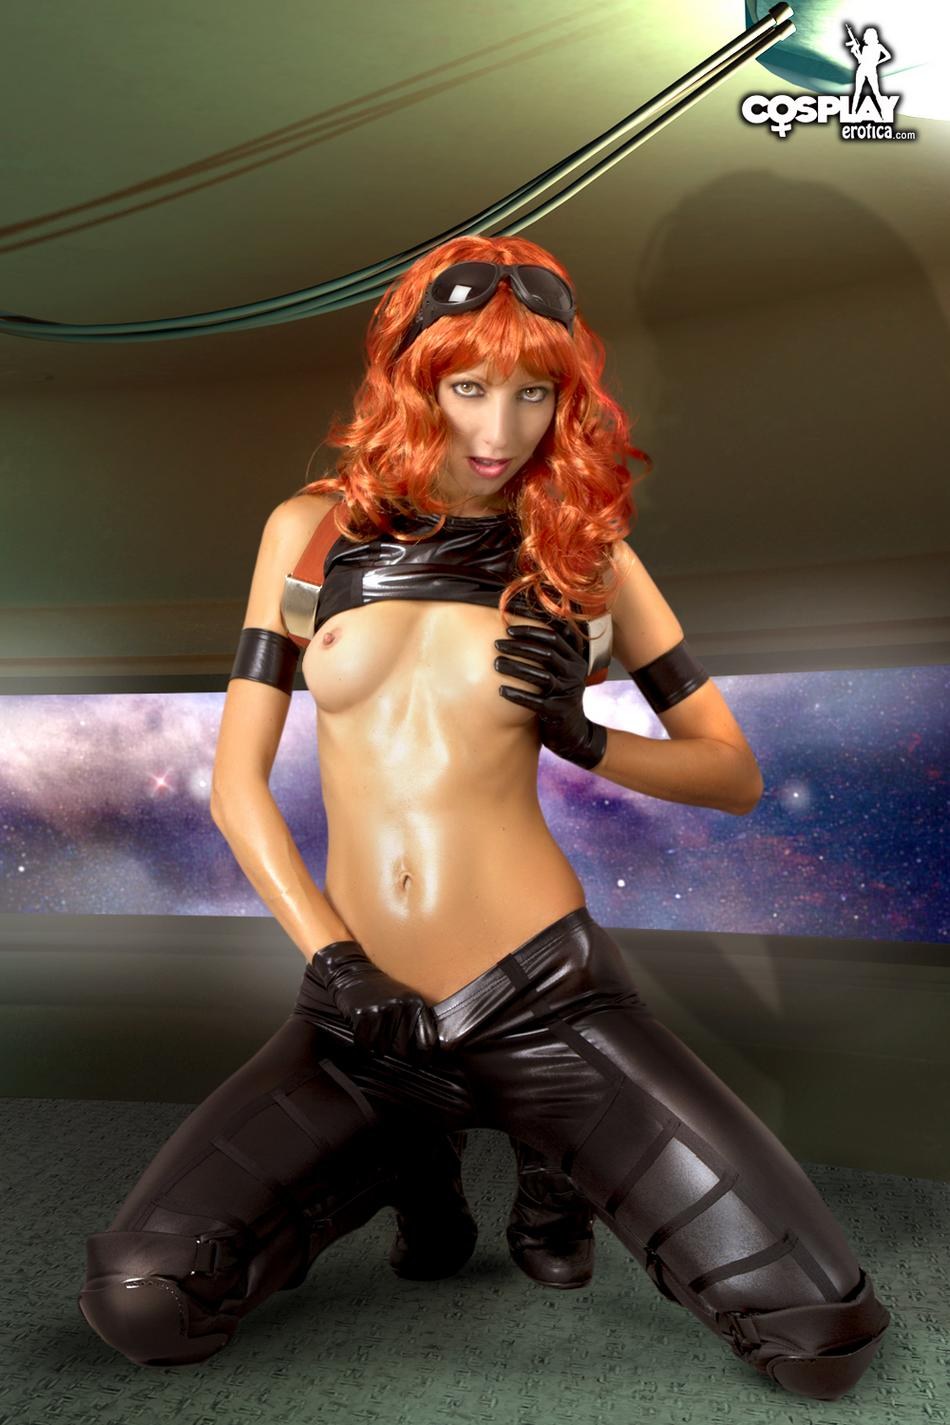 Cosplay Porn: Star Wars Porn And